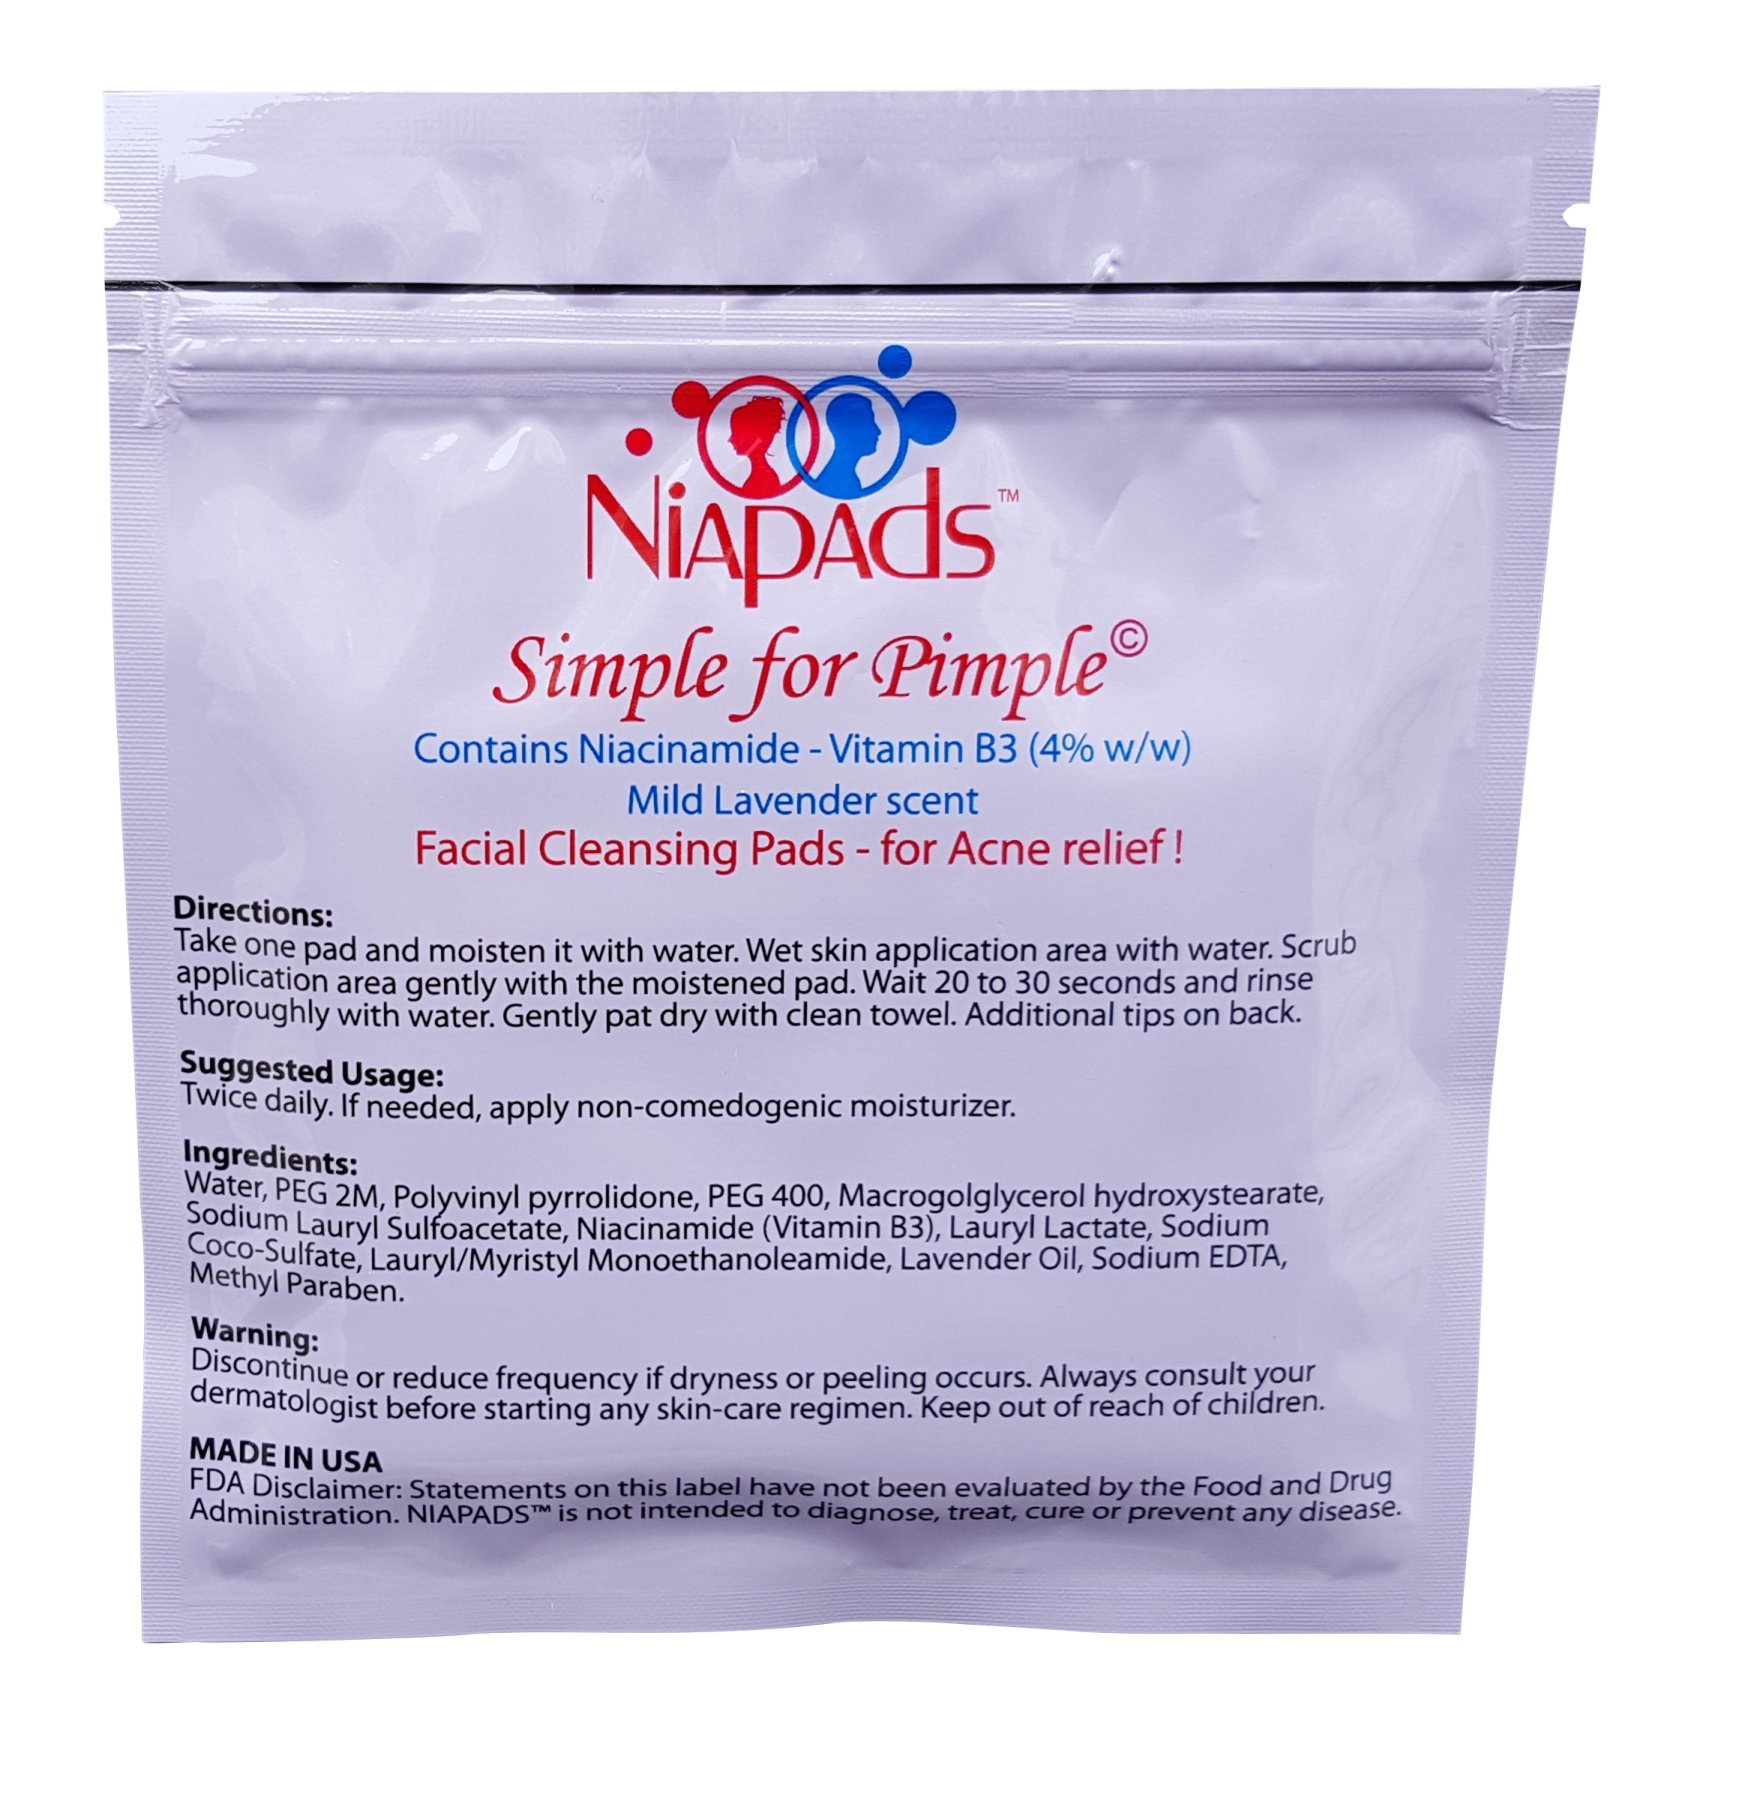 Niapads: Treatment for Moderate to Severe Acne including Cystic Acne. Reduces Acne Scars and Blackheads. Contains Niacinamide and Lavender oil. Simple one-step Acne Treatment. 30 pads/pack.